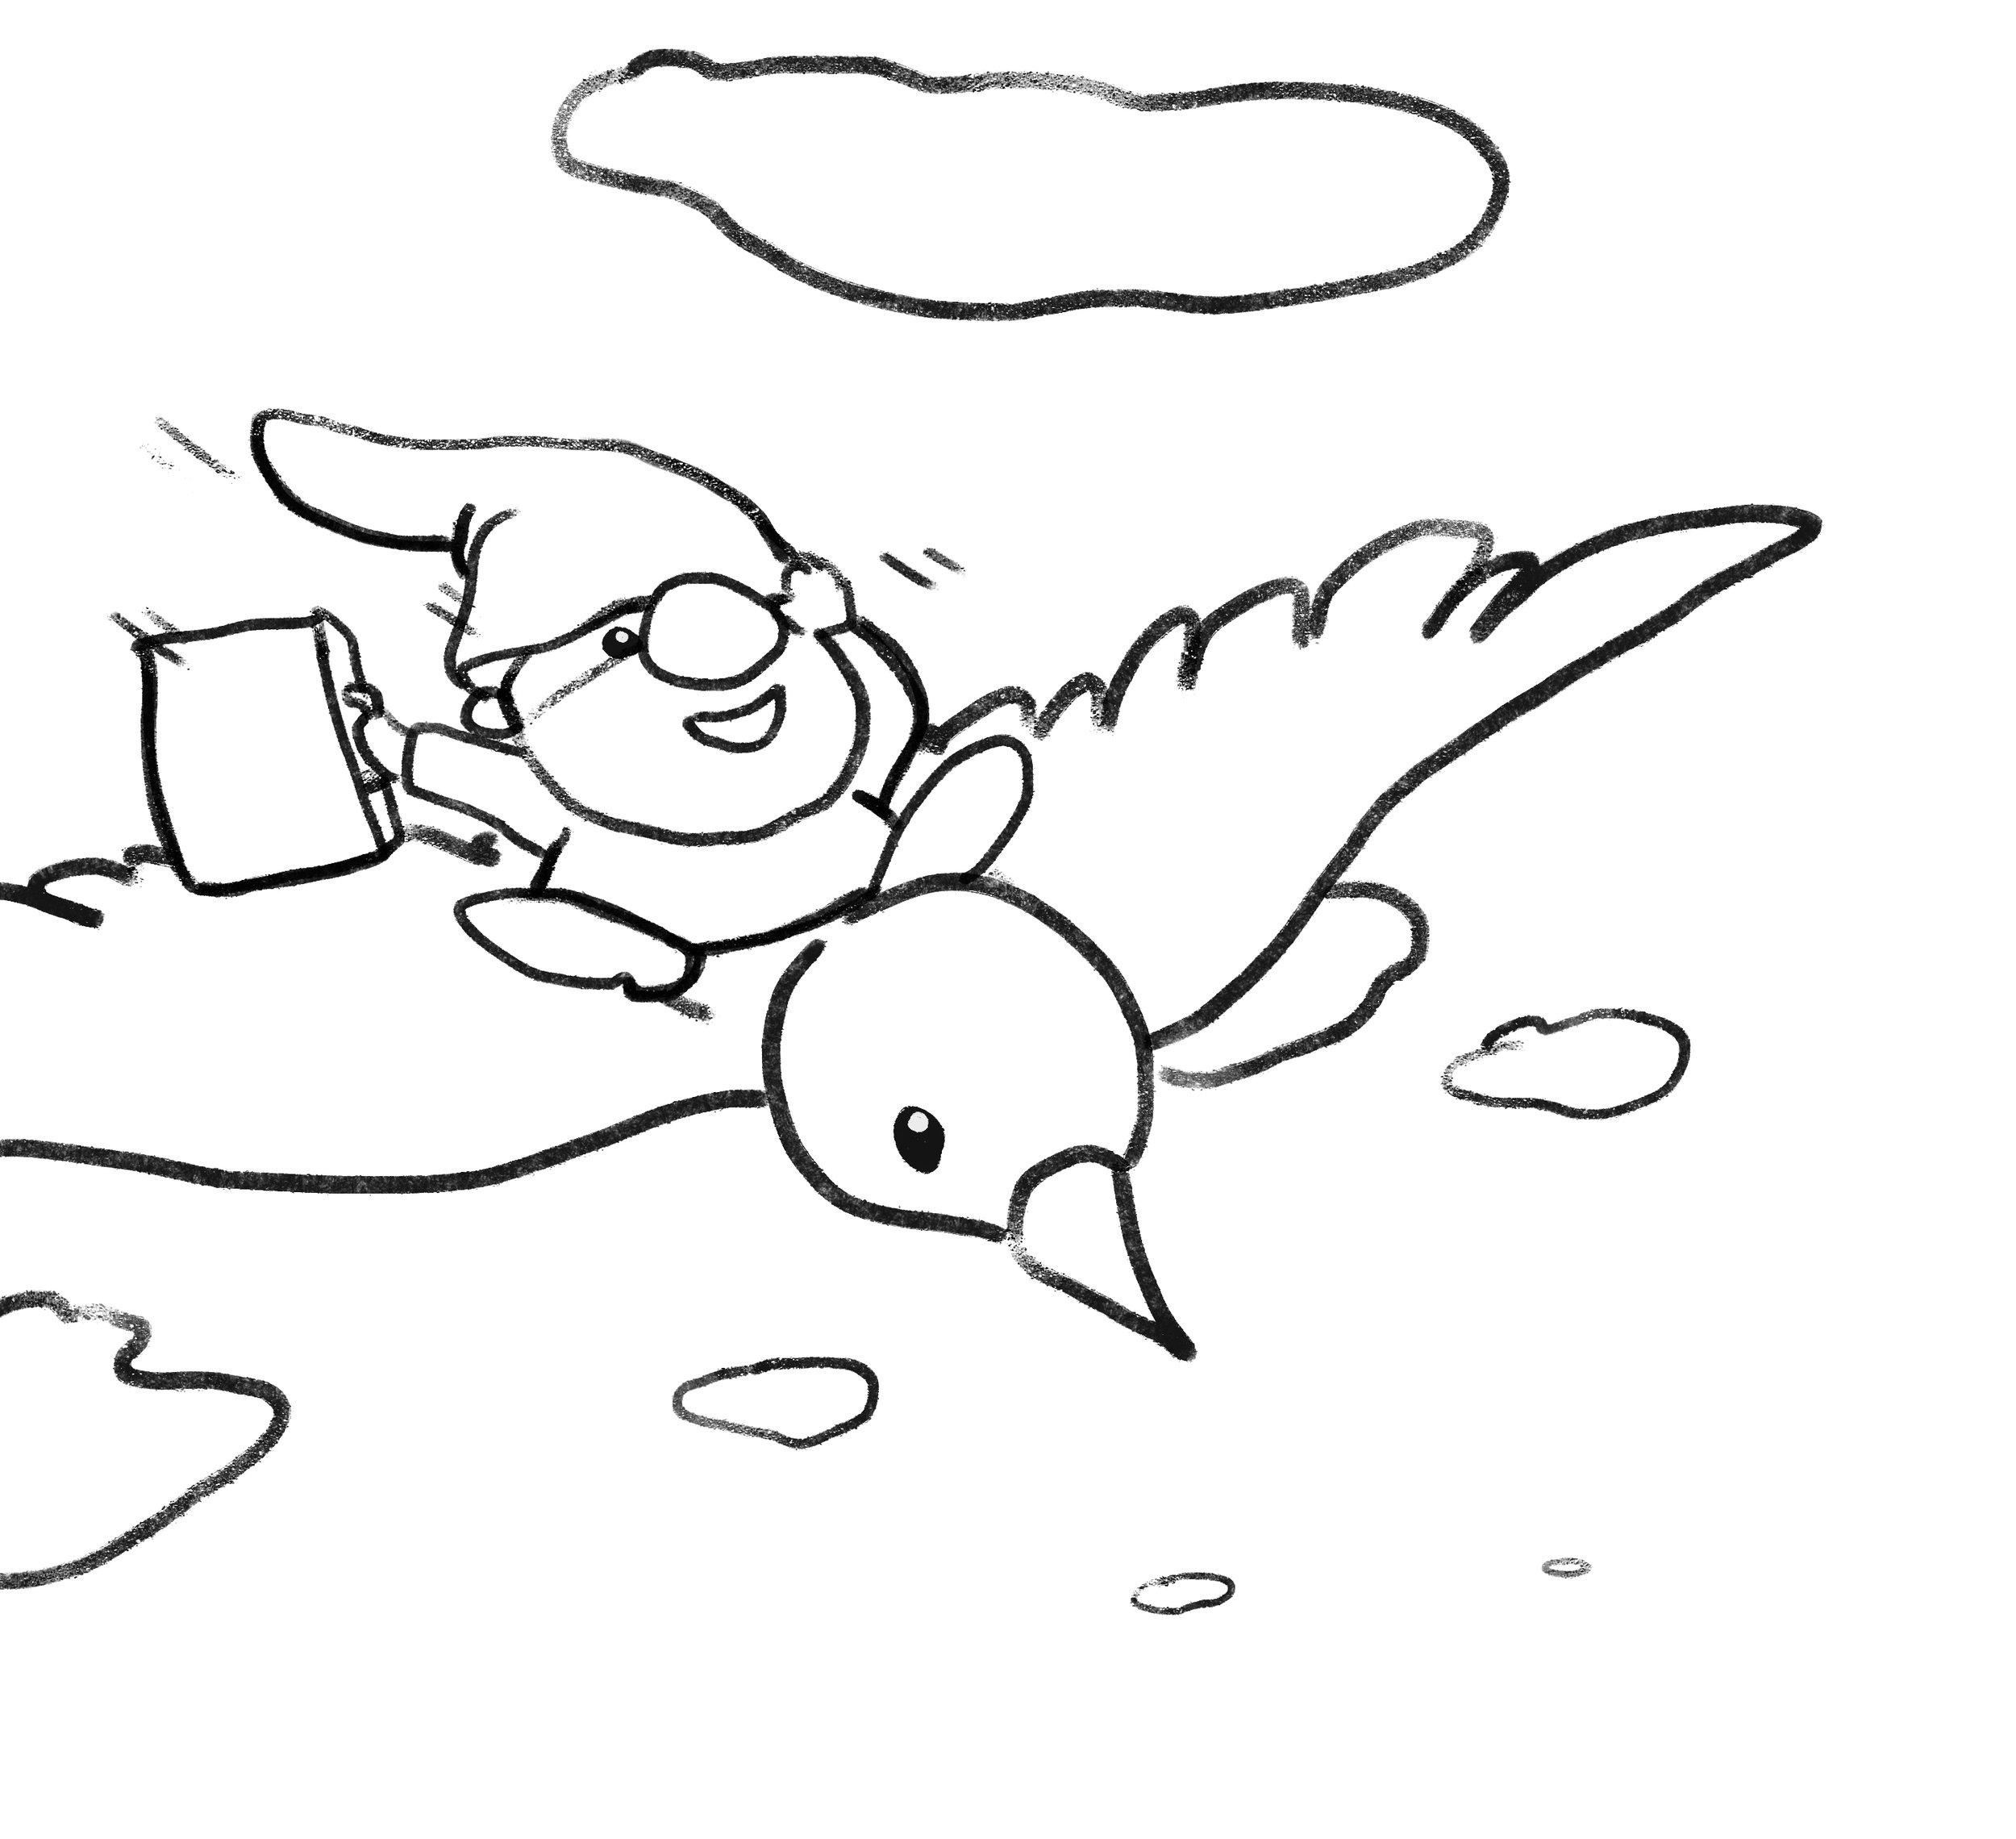 Heartley on bird  with clouds outline.jpg